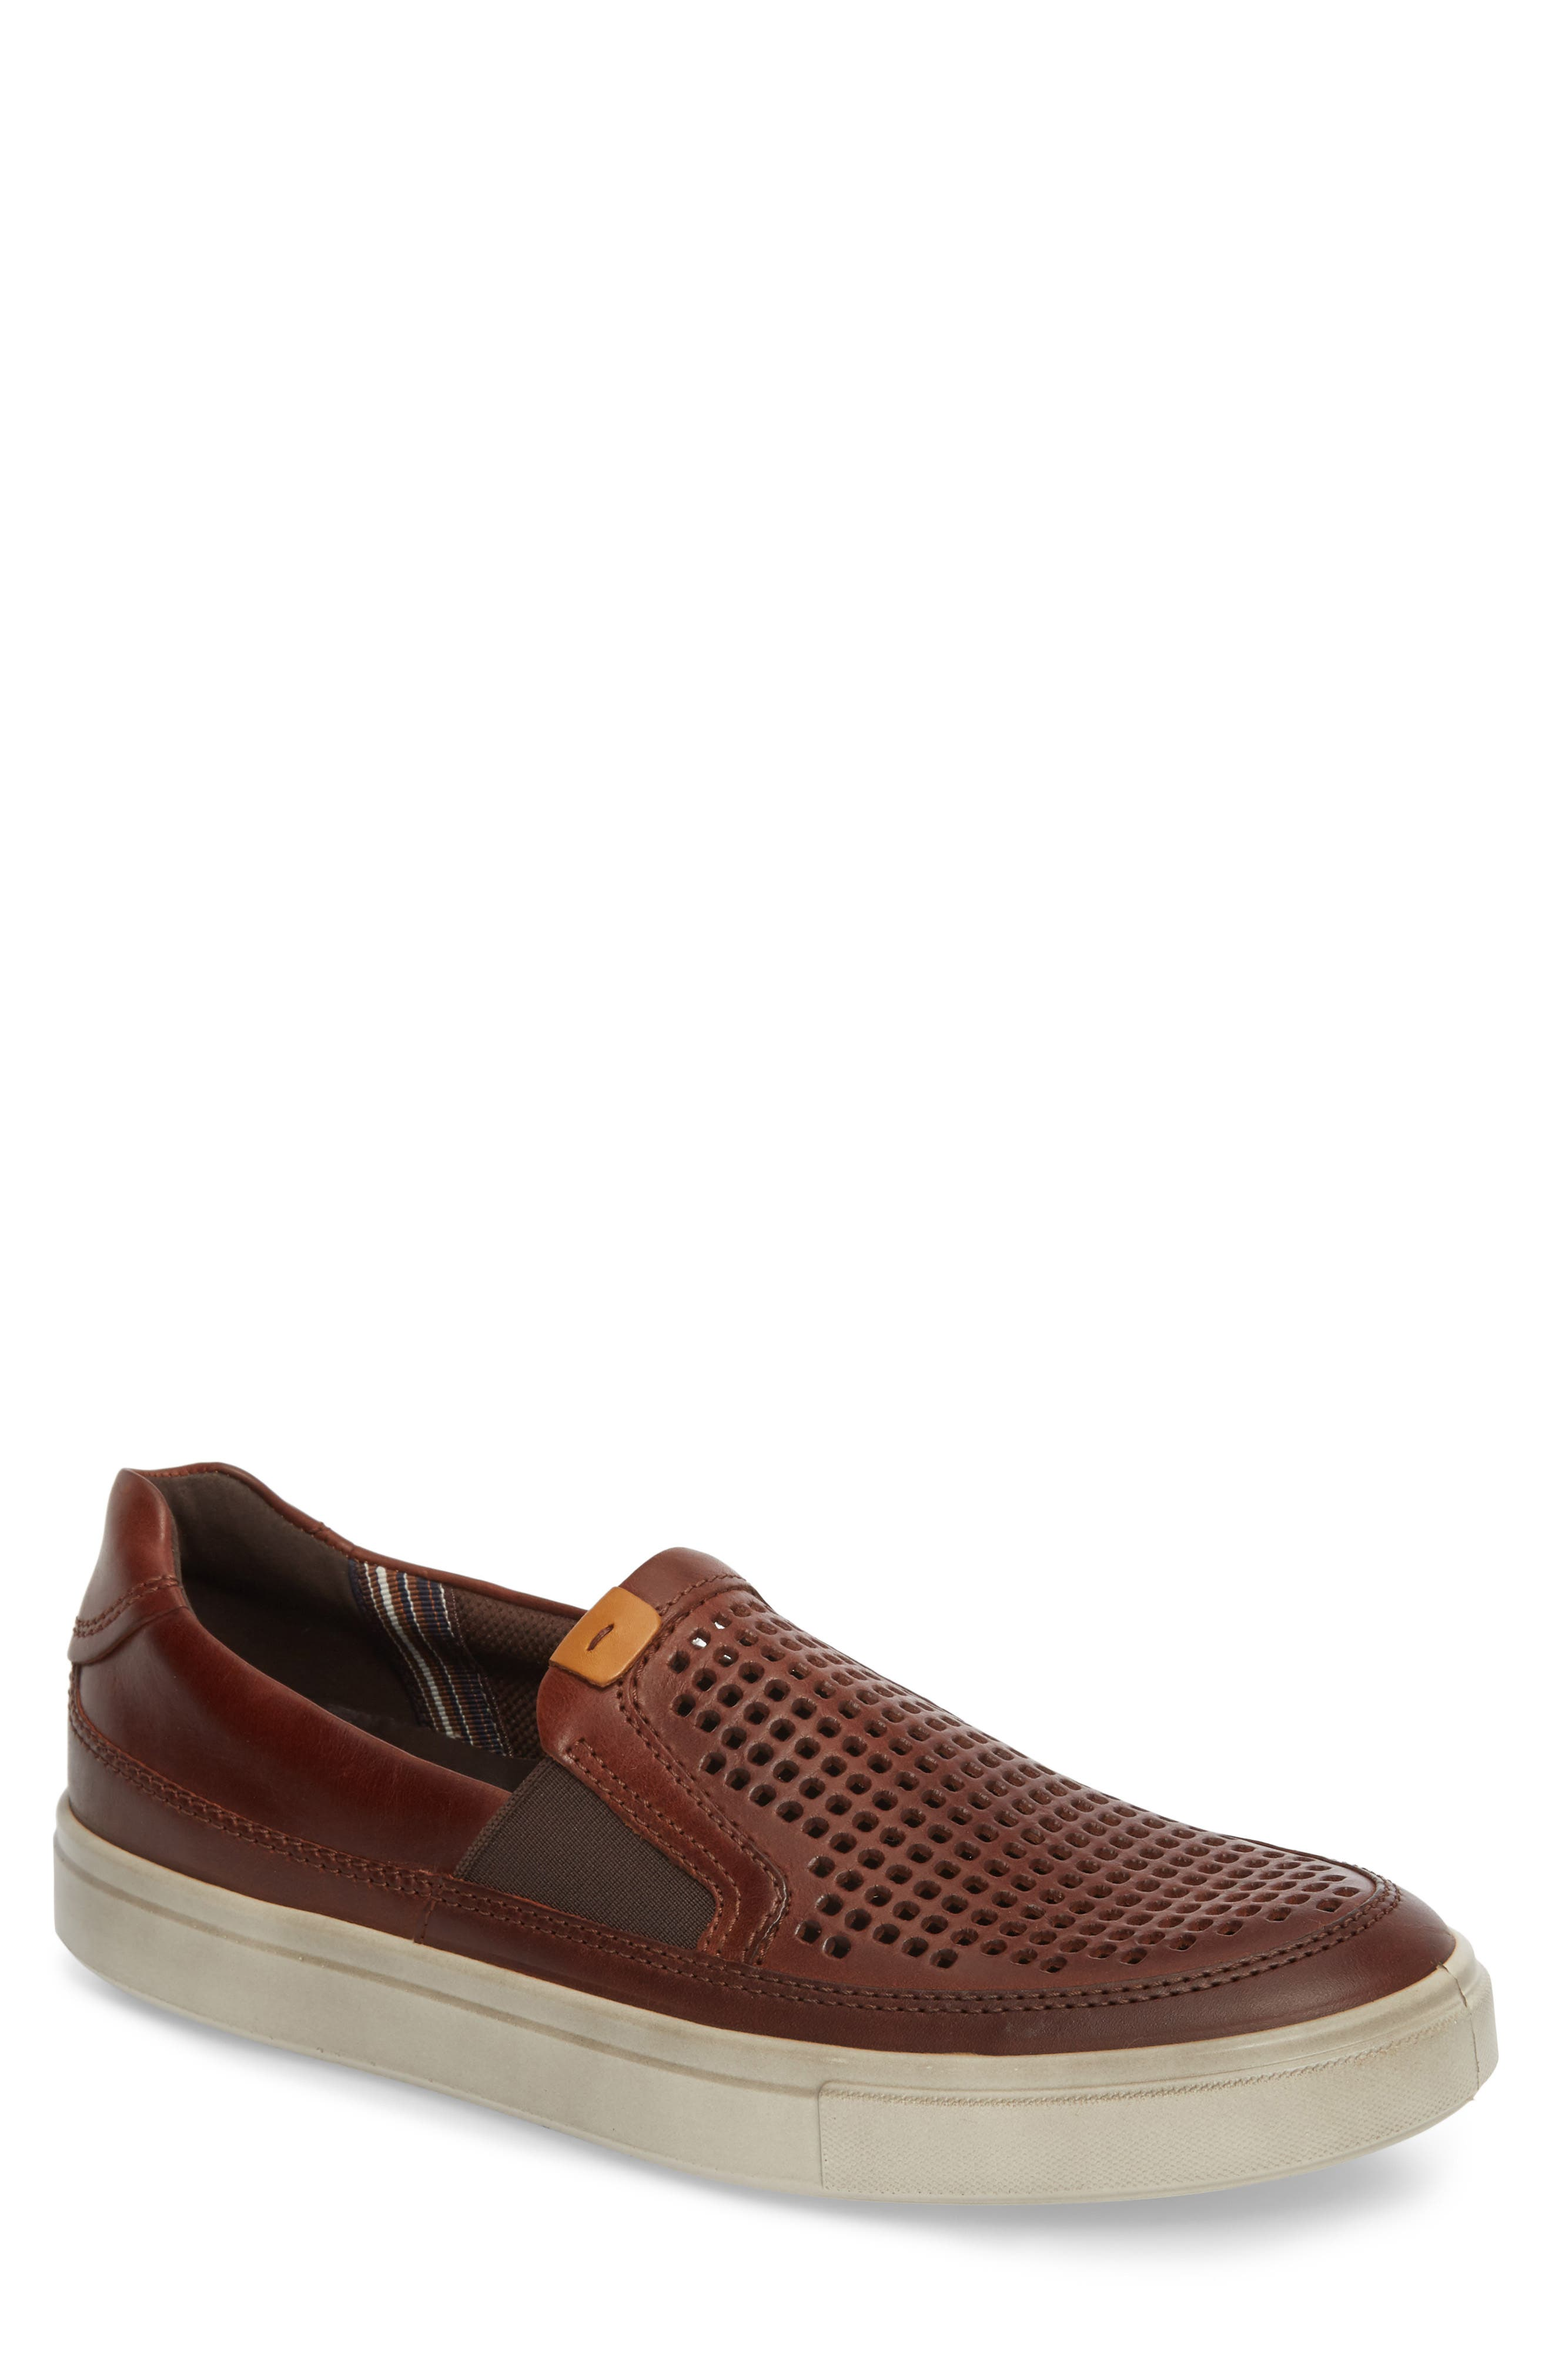 Kyle Perforated Slip-On Sneaker,                         Main,                         color, COGNAC LEATHER